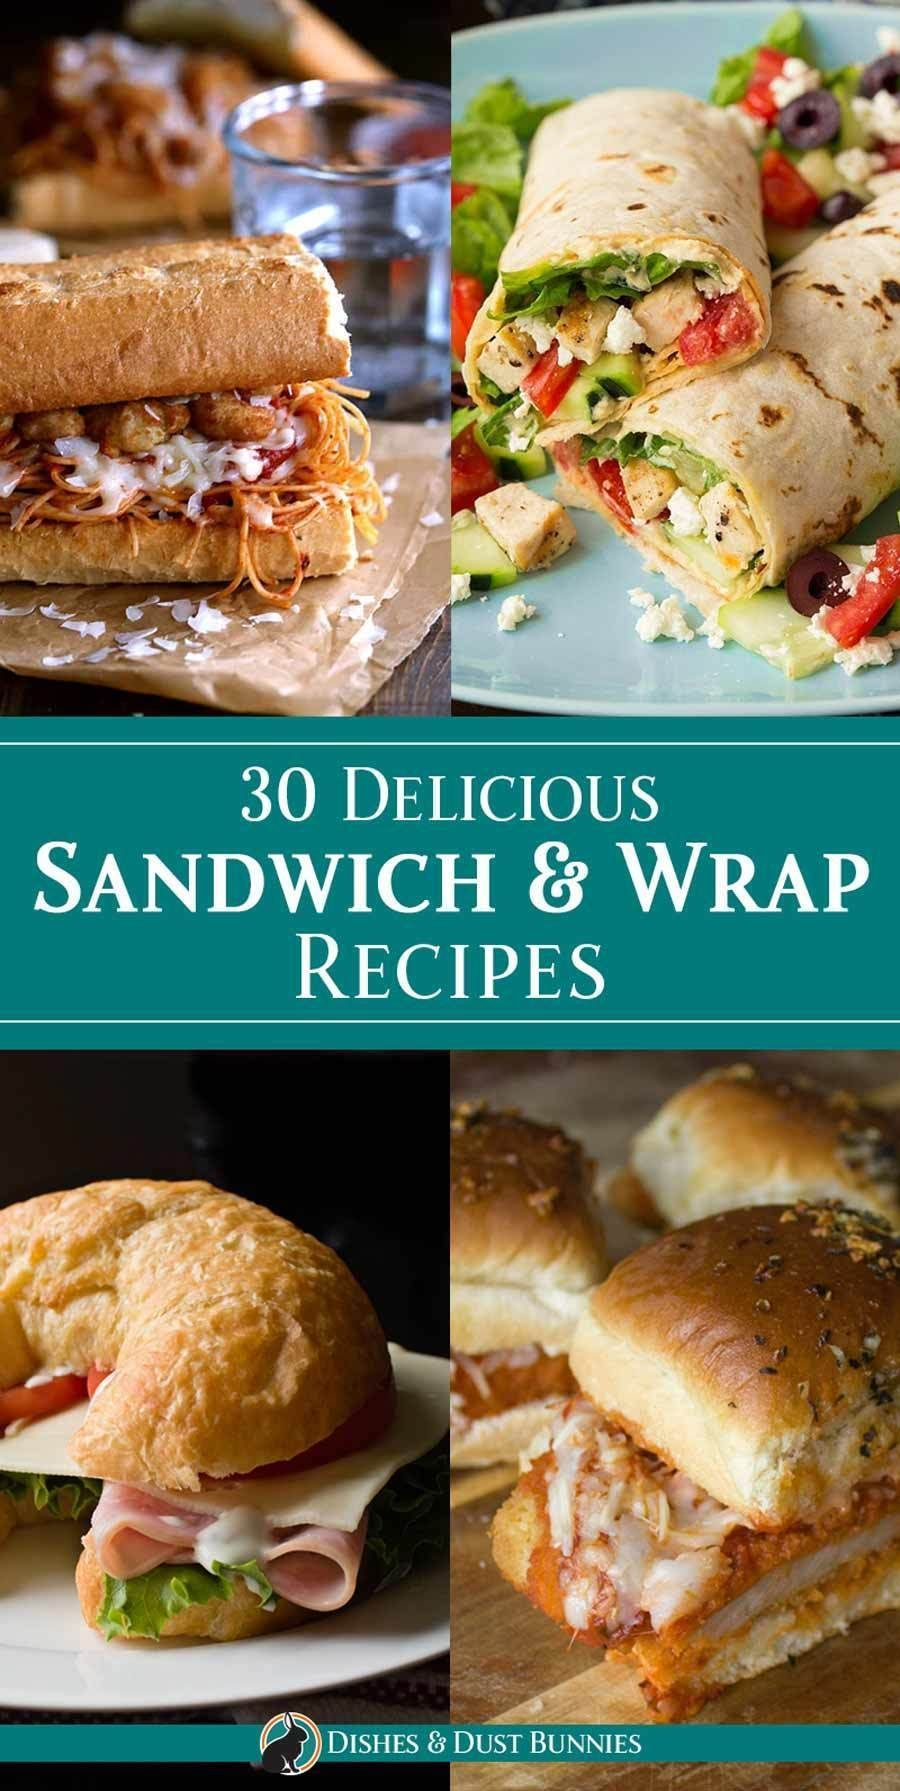 30 Delicious Sandwich & Wrap Recipes -   You don't have to settle for the same ol' boring lunch! This week, change things up a bit with one of the delicious sandwiches and wraps in todays roundup - they're sure to please just about everyone!Which one will you make for your next lunch? - 30 Delicious Sandwich & Wrap Recipes via Michelle Varga (Dishes and Dust Bunnies) -  Homepage      If you want to have a stylish and satisfying dinner with your loved ones, this recipe will meet all your wishes